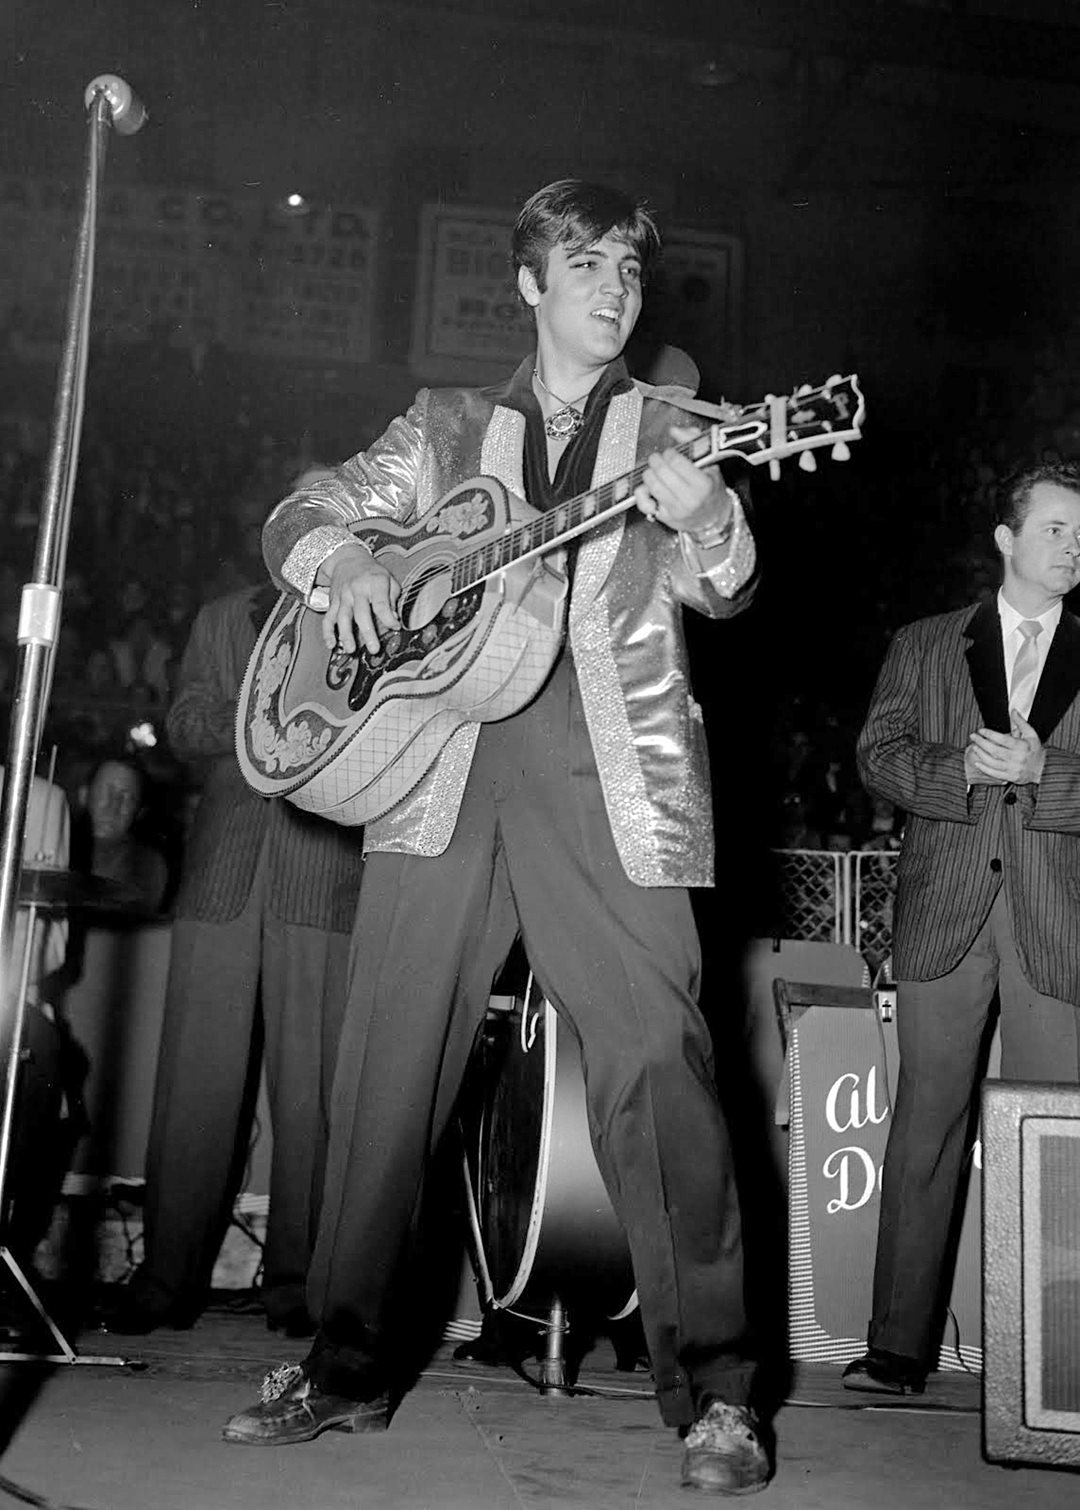 Elvis Presley performs to a capacity crowd of 9,000 fans at the Ottawa Auditorium on April 3, 1957.